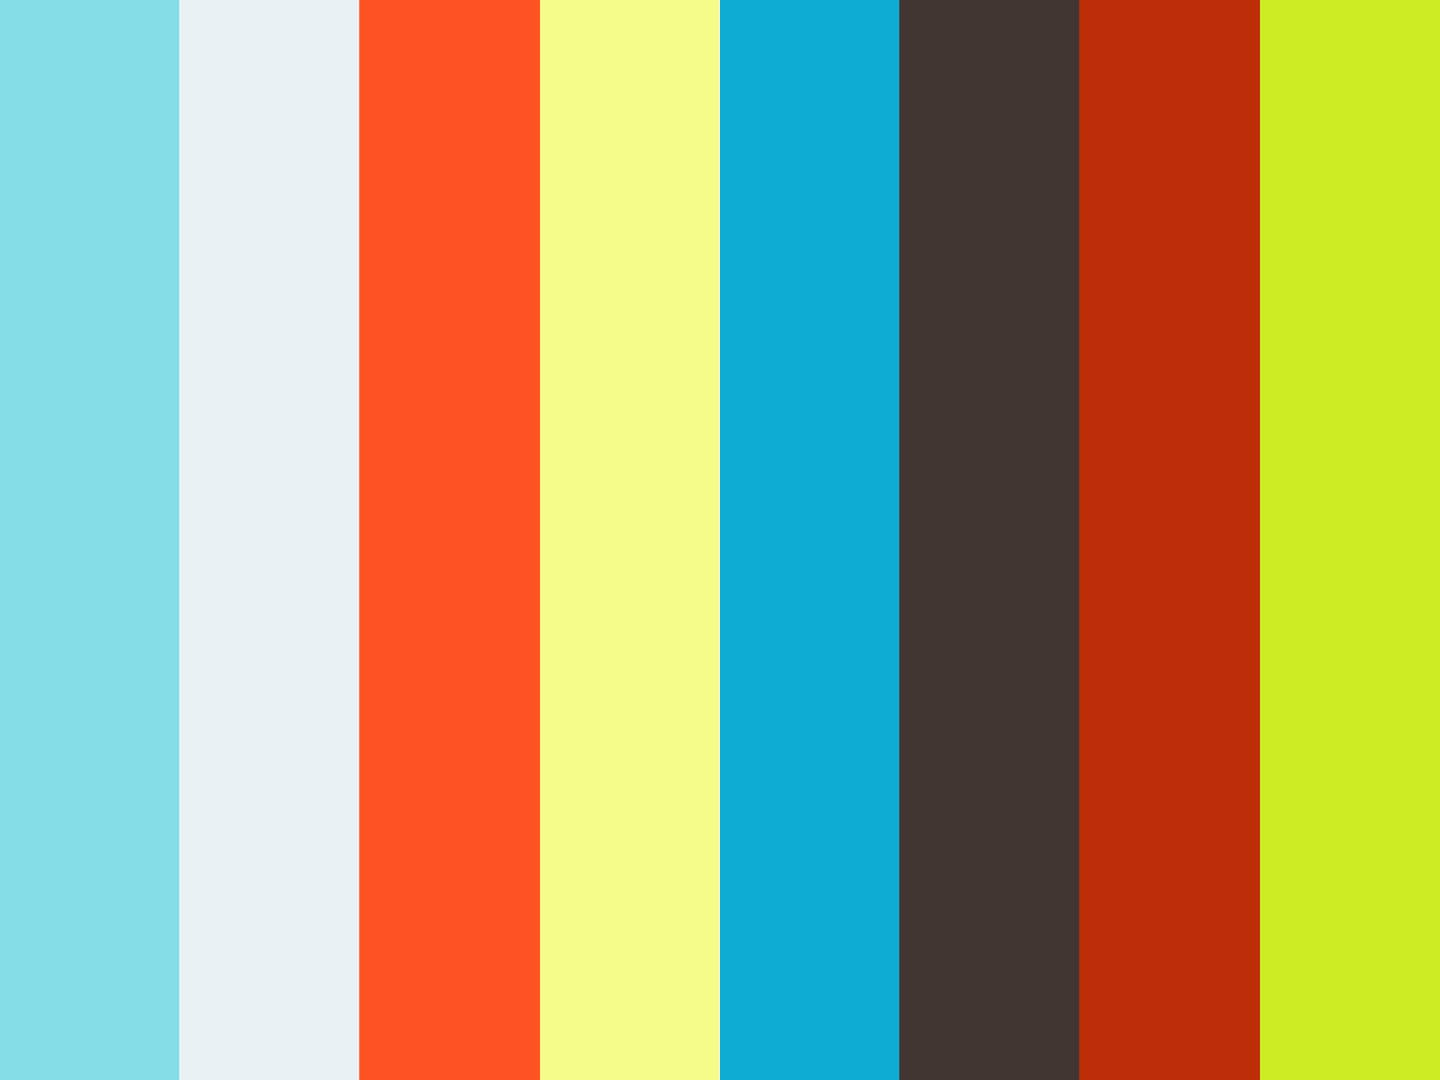 Tori Black Talks On Vimeo-6579